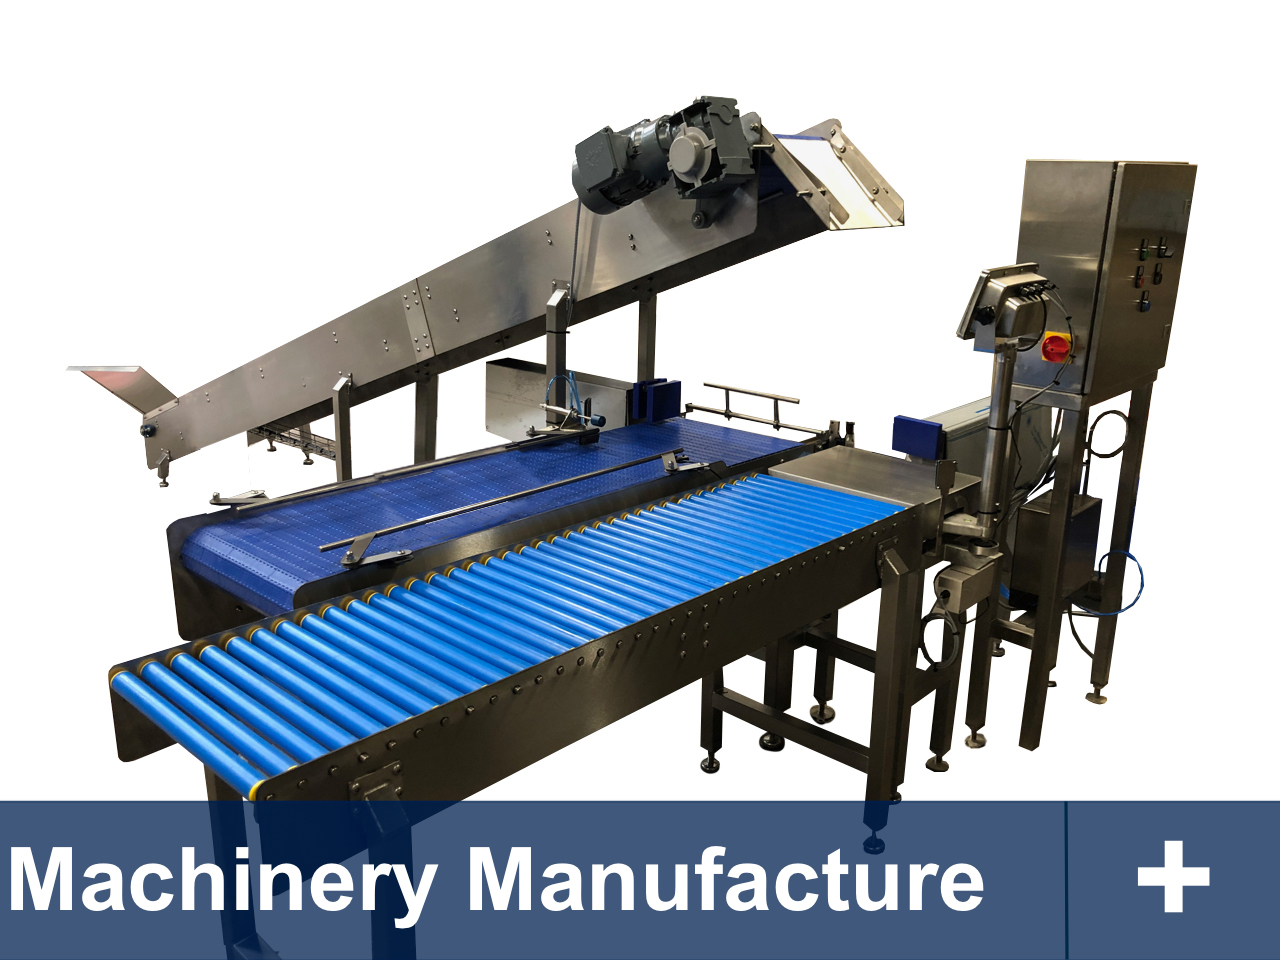 Food Machinery Manufacture